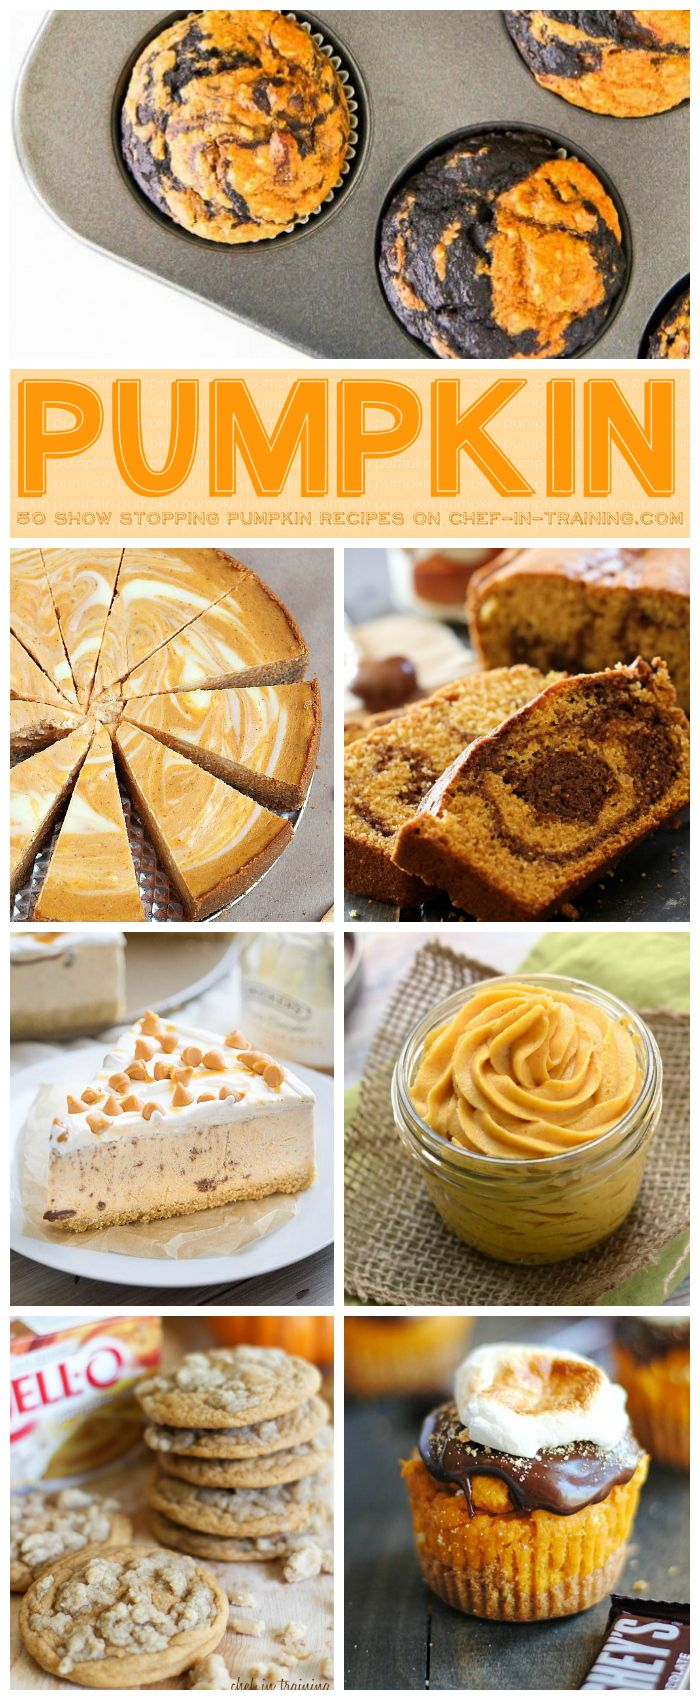 50 Show Stopping Pumpkin Recipes on chef-in-training.com …SO many great and yummy pumpkin recipes to choose from for fall!